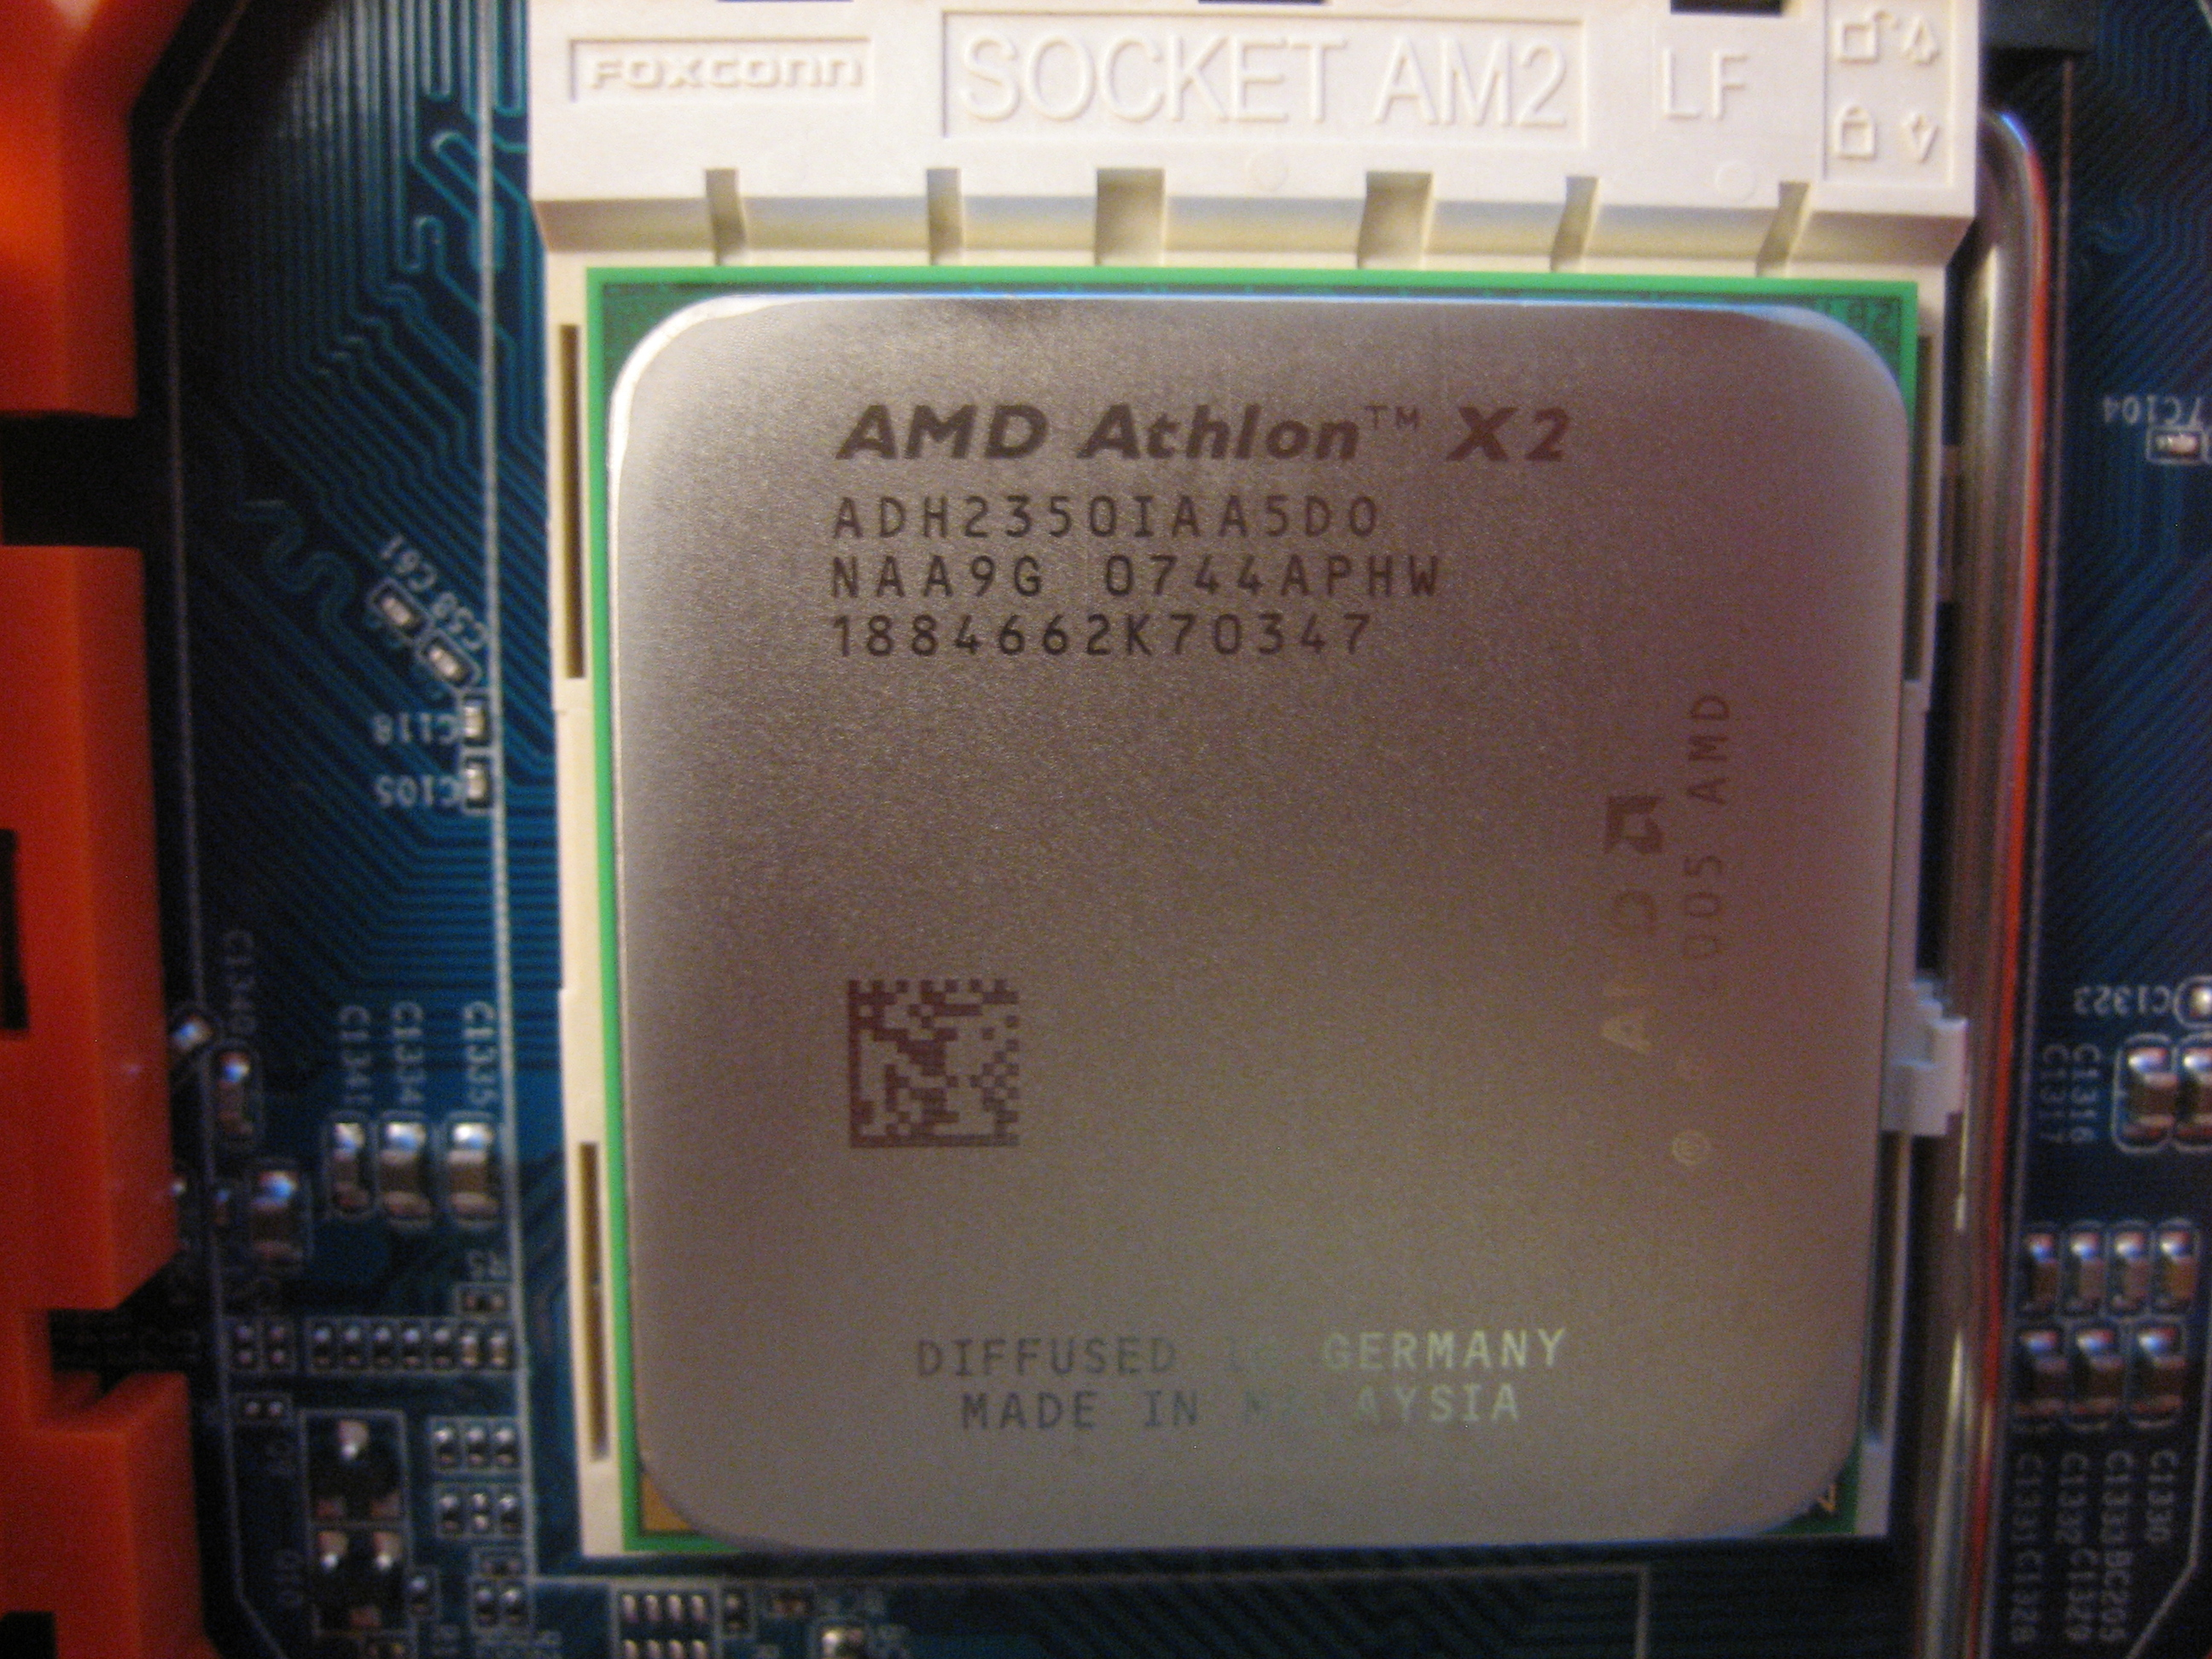 b57d5ced017 File Athlon 64 X2 BE-2350 (ADH2350IAA5DO) in Socket AM2-flickr - by-sa -  lancefisher.jpg